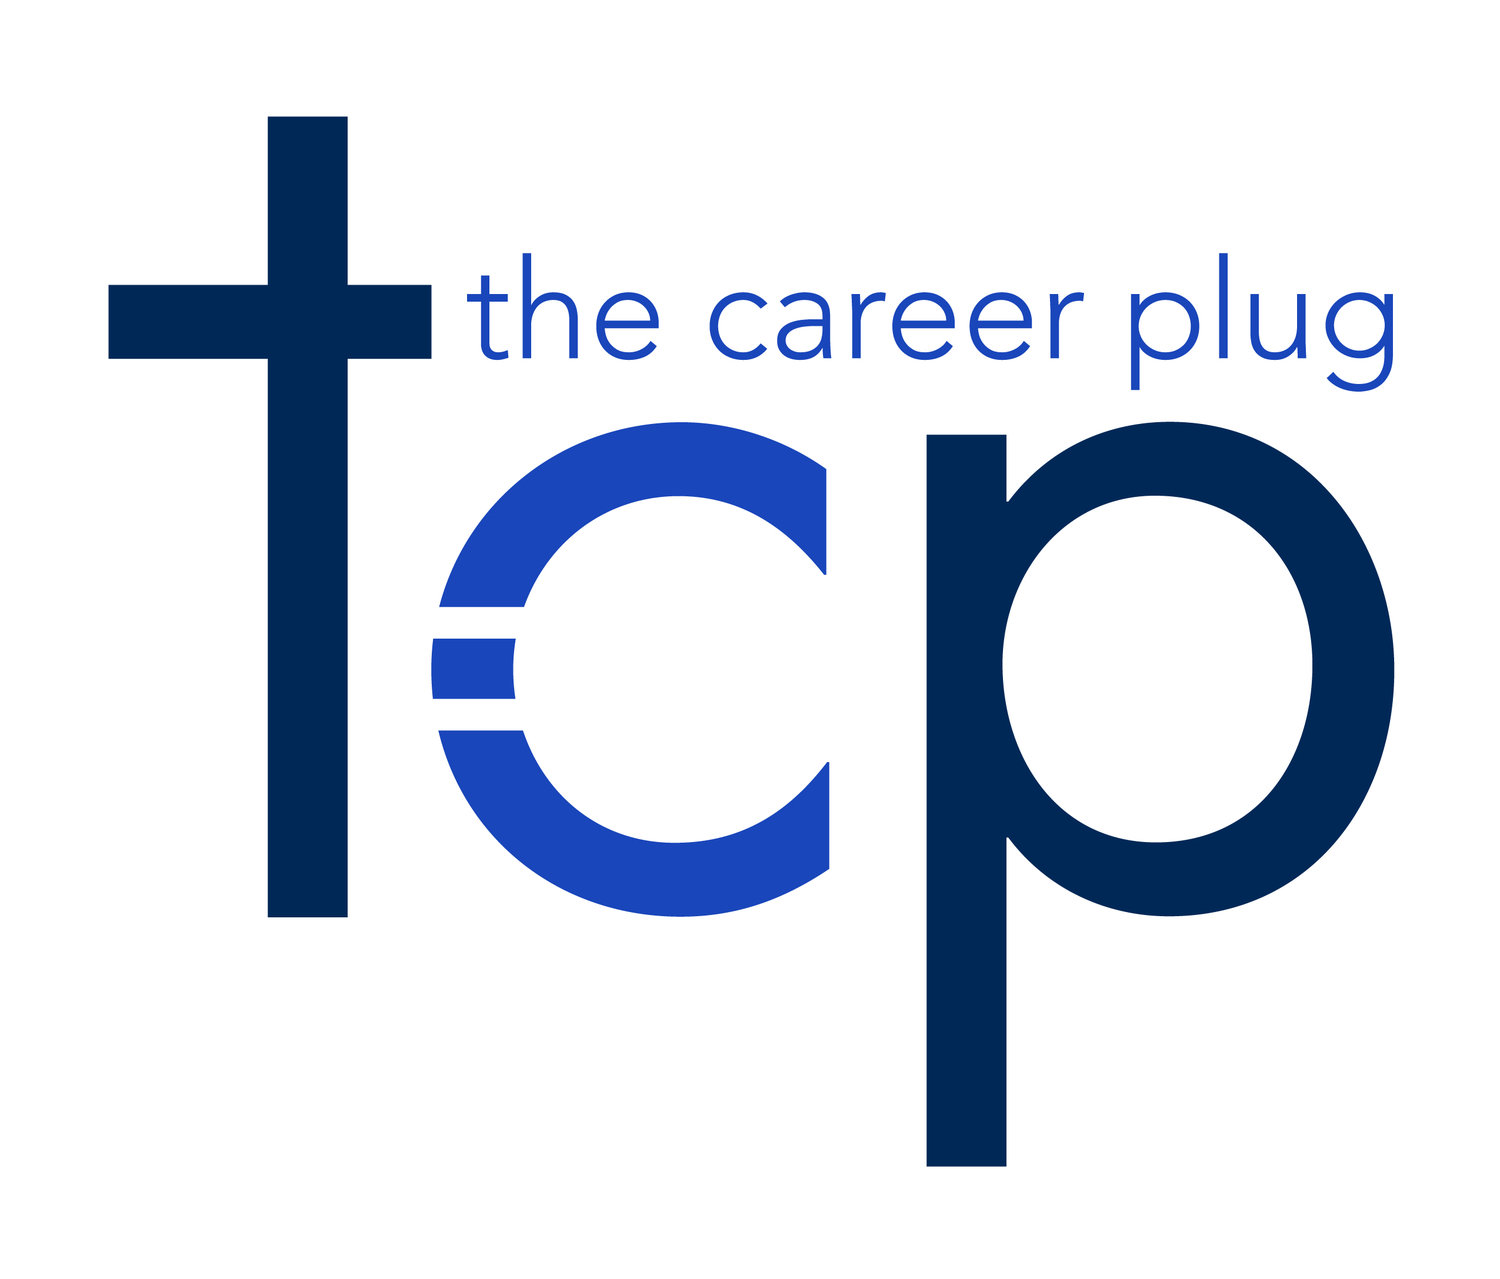 the career plug